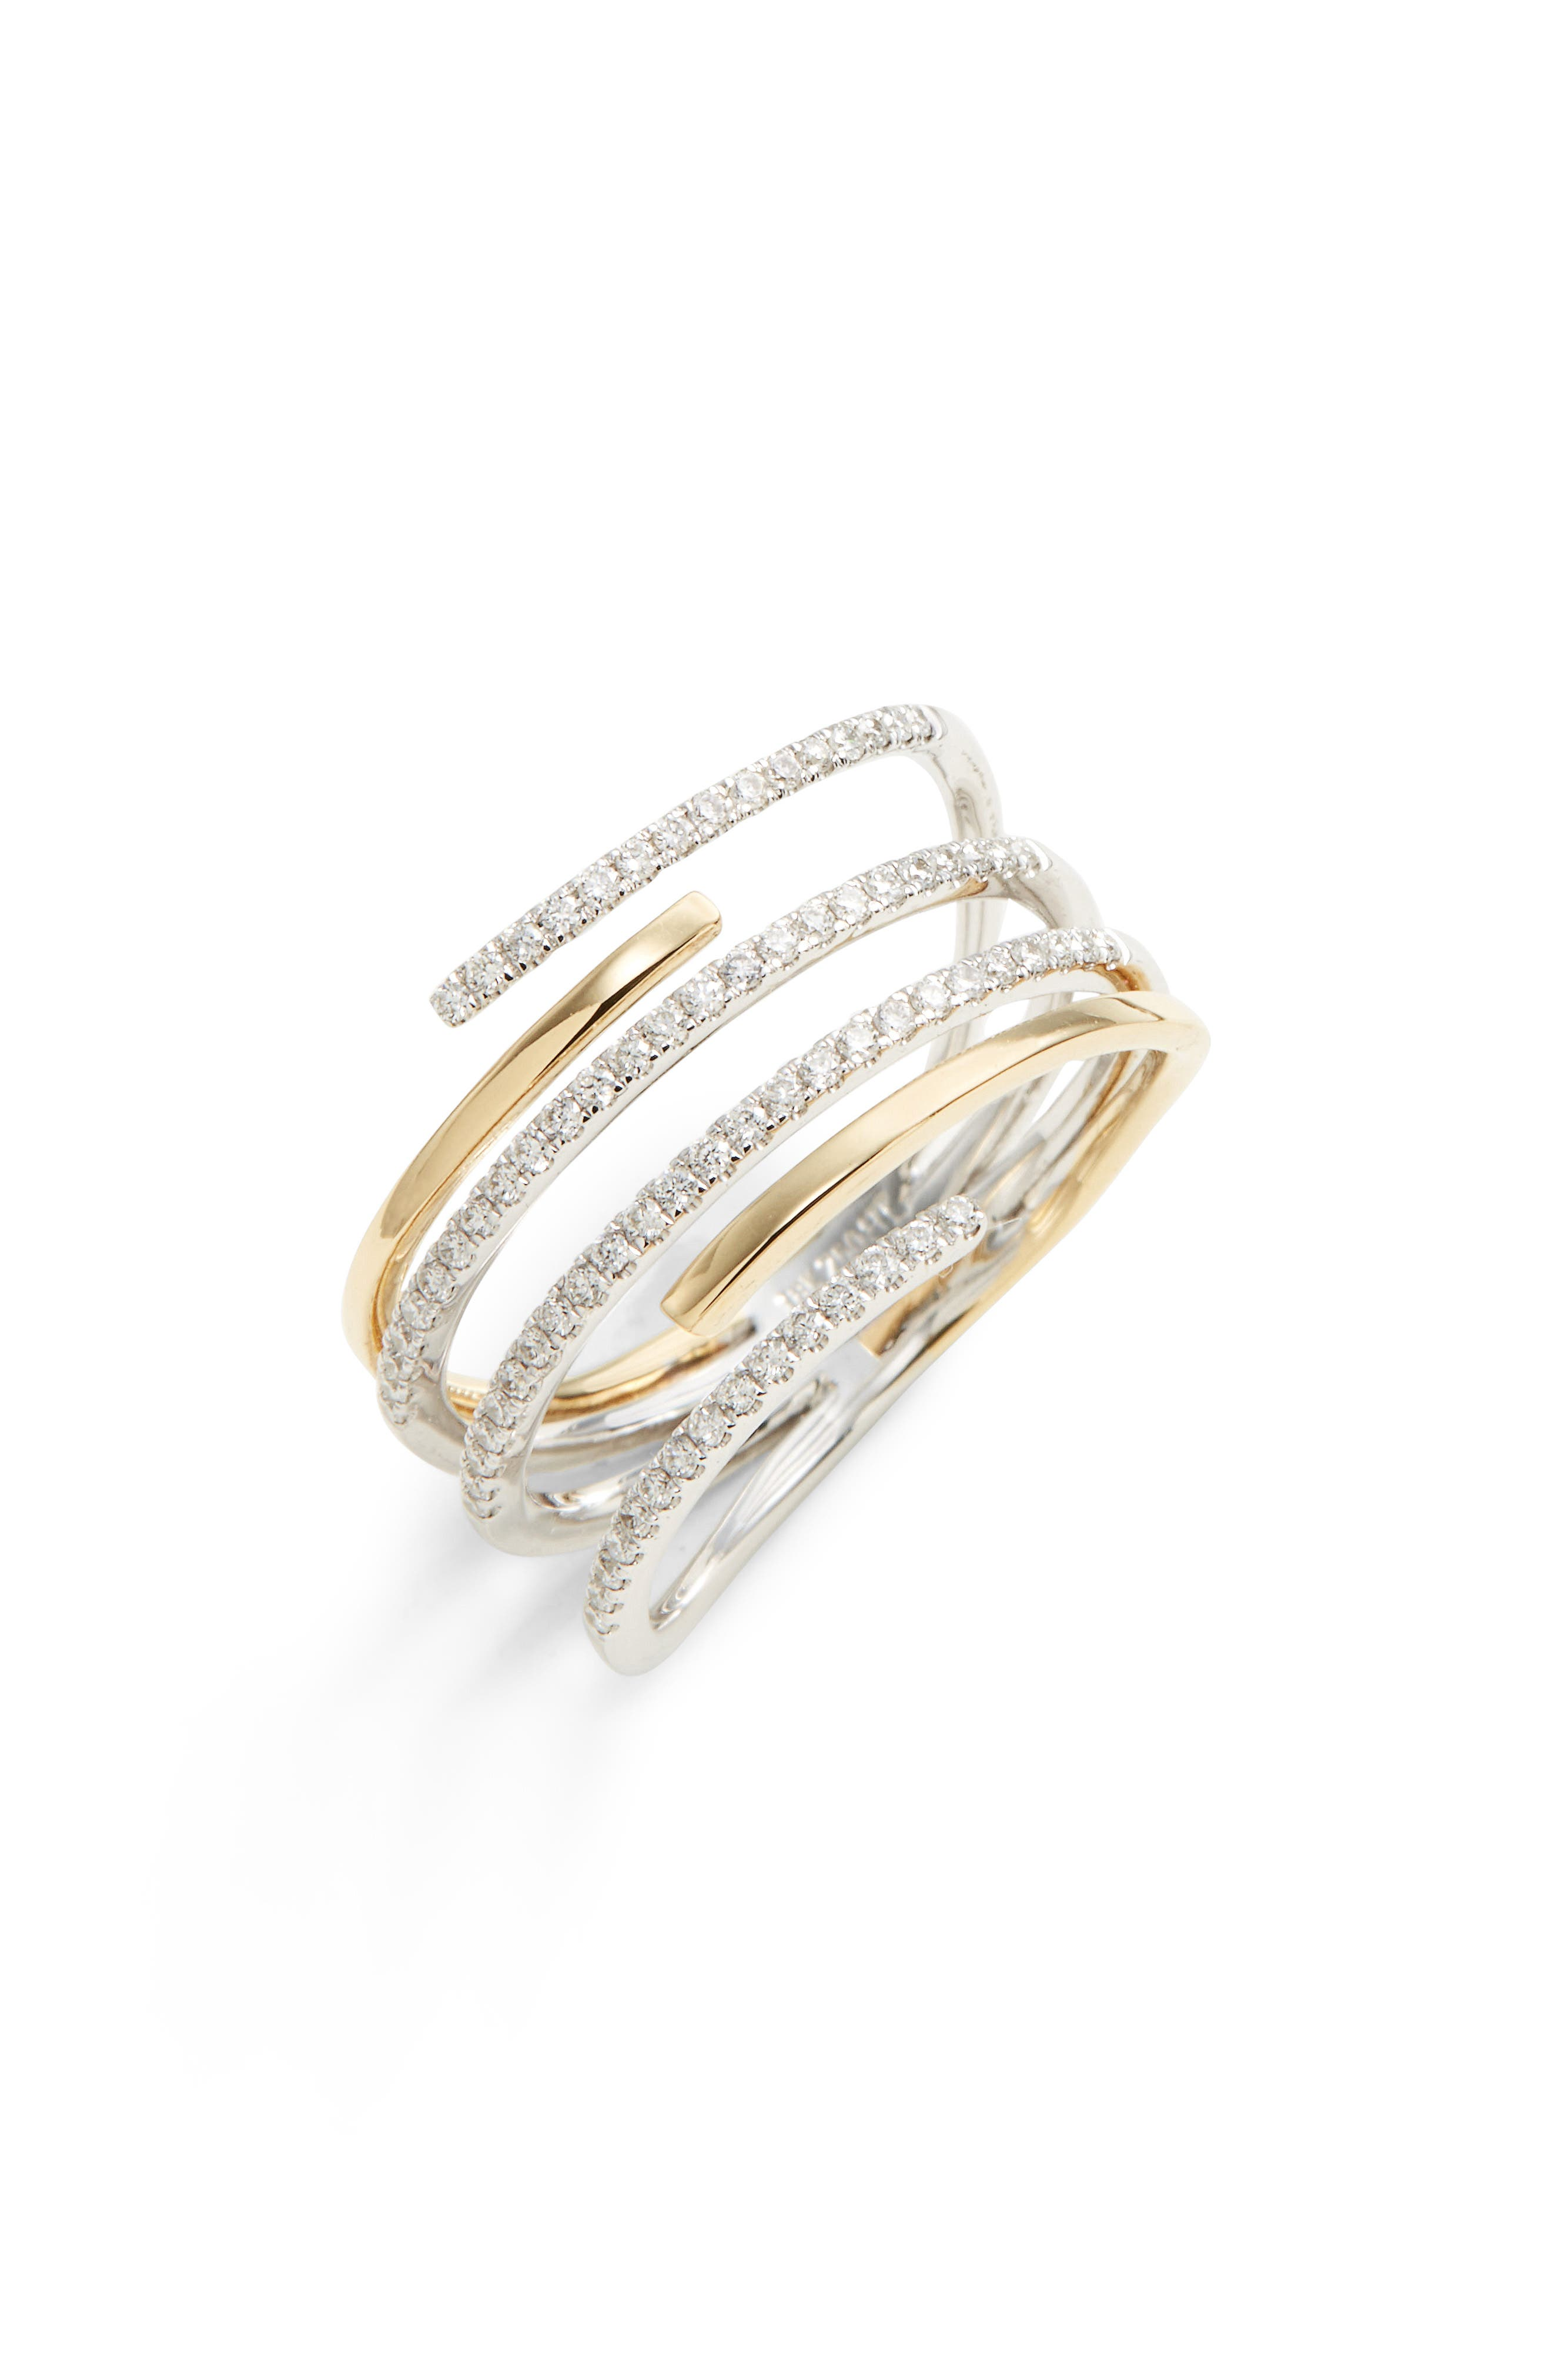 Openwork Diamond Ring,                         Main,                         color, YELLOW GOLD/ WHITE GOLD